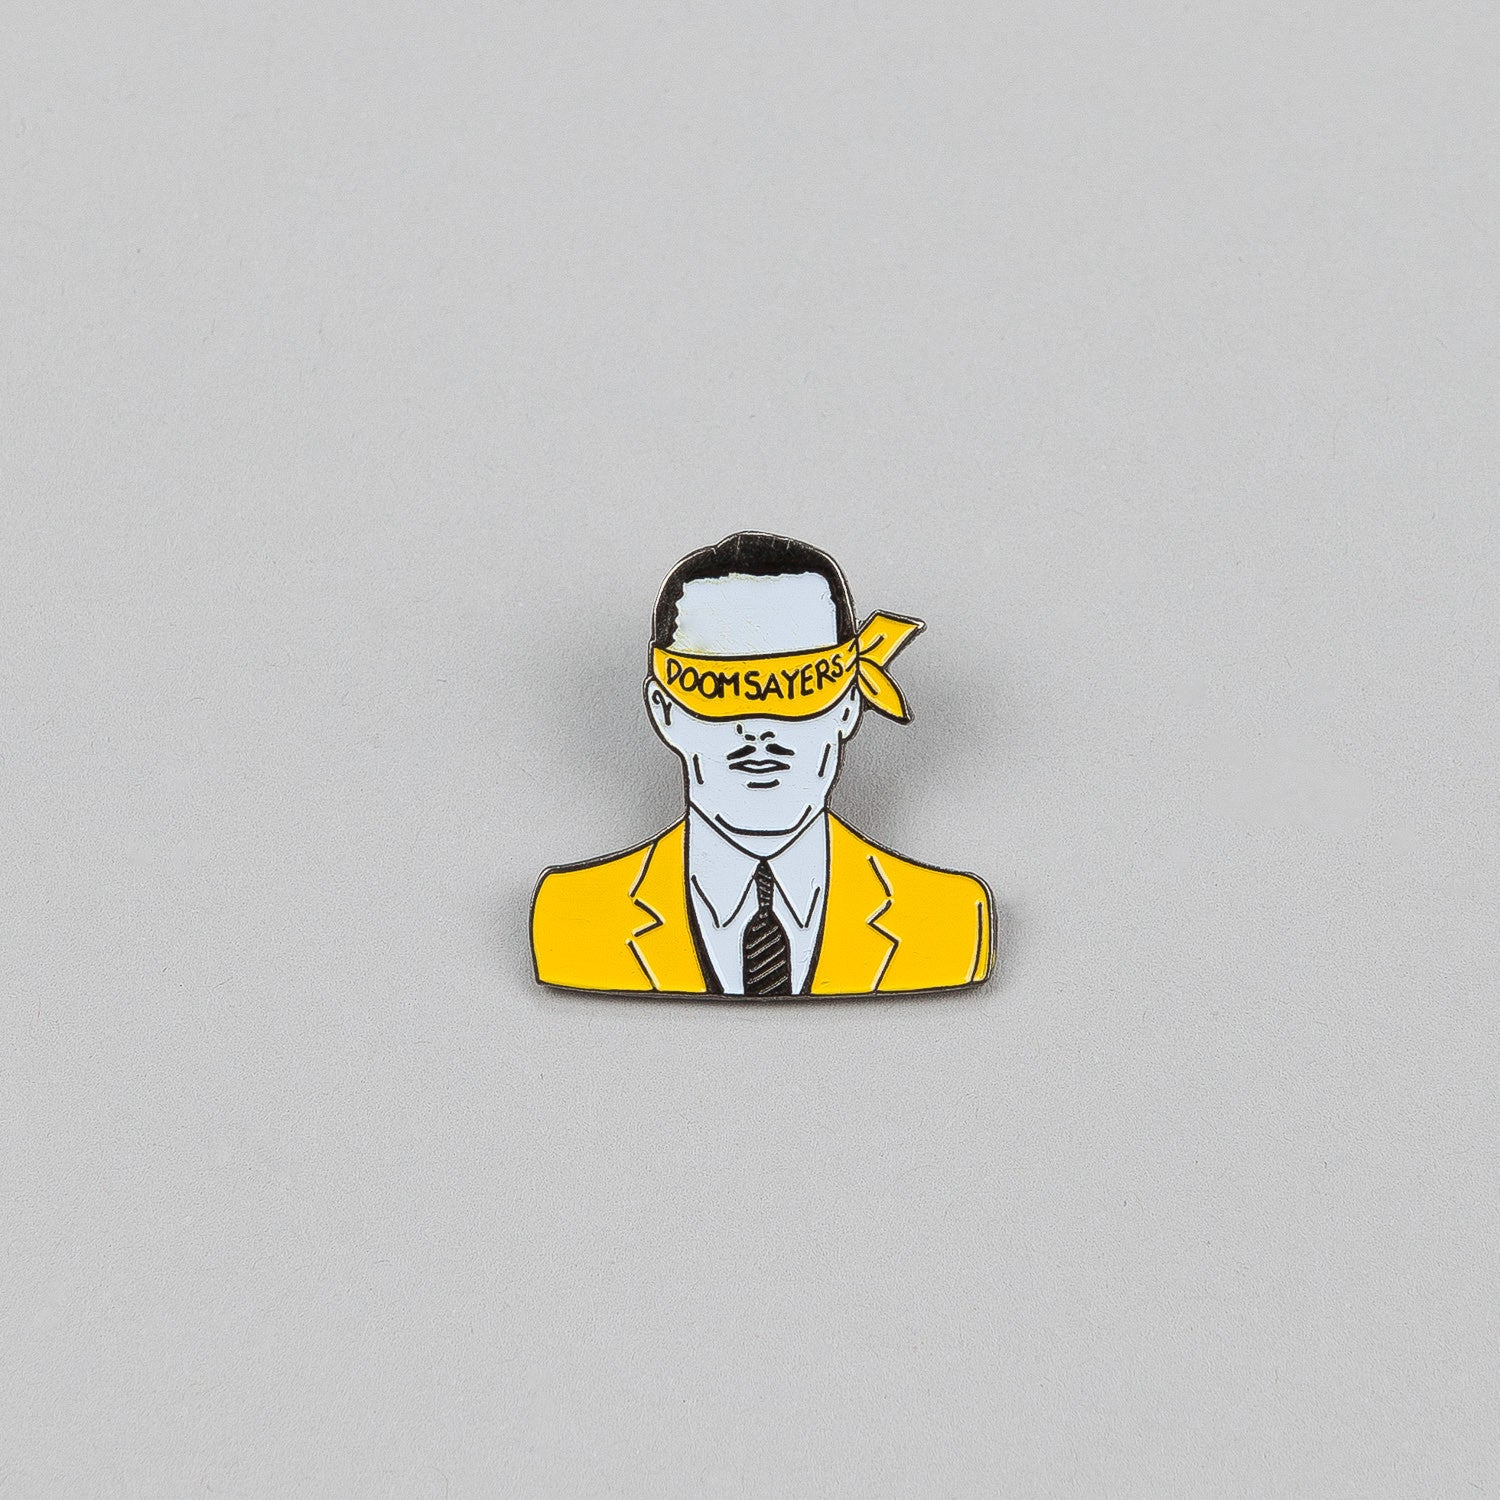 Doomsayers Corp Guy Lapel Pin